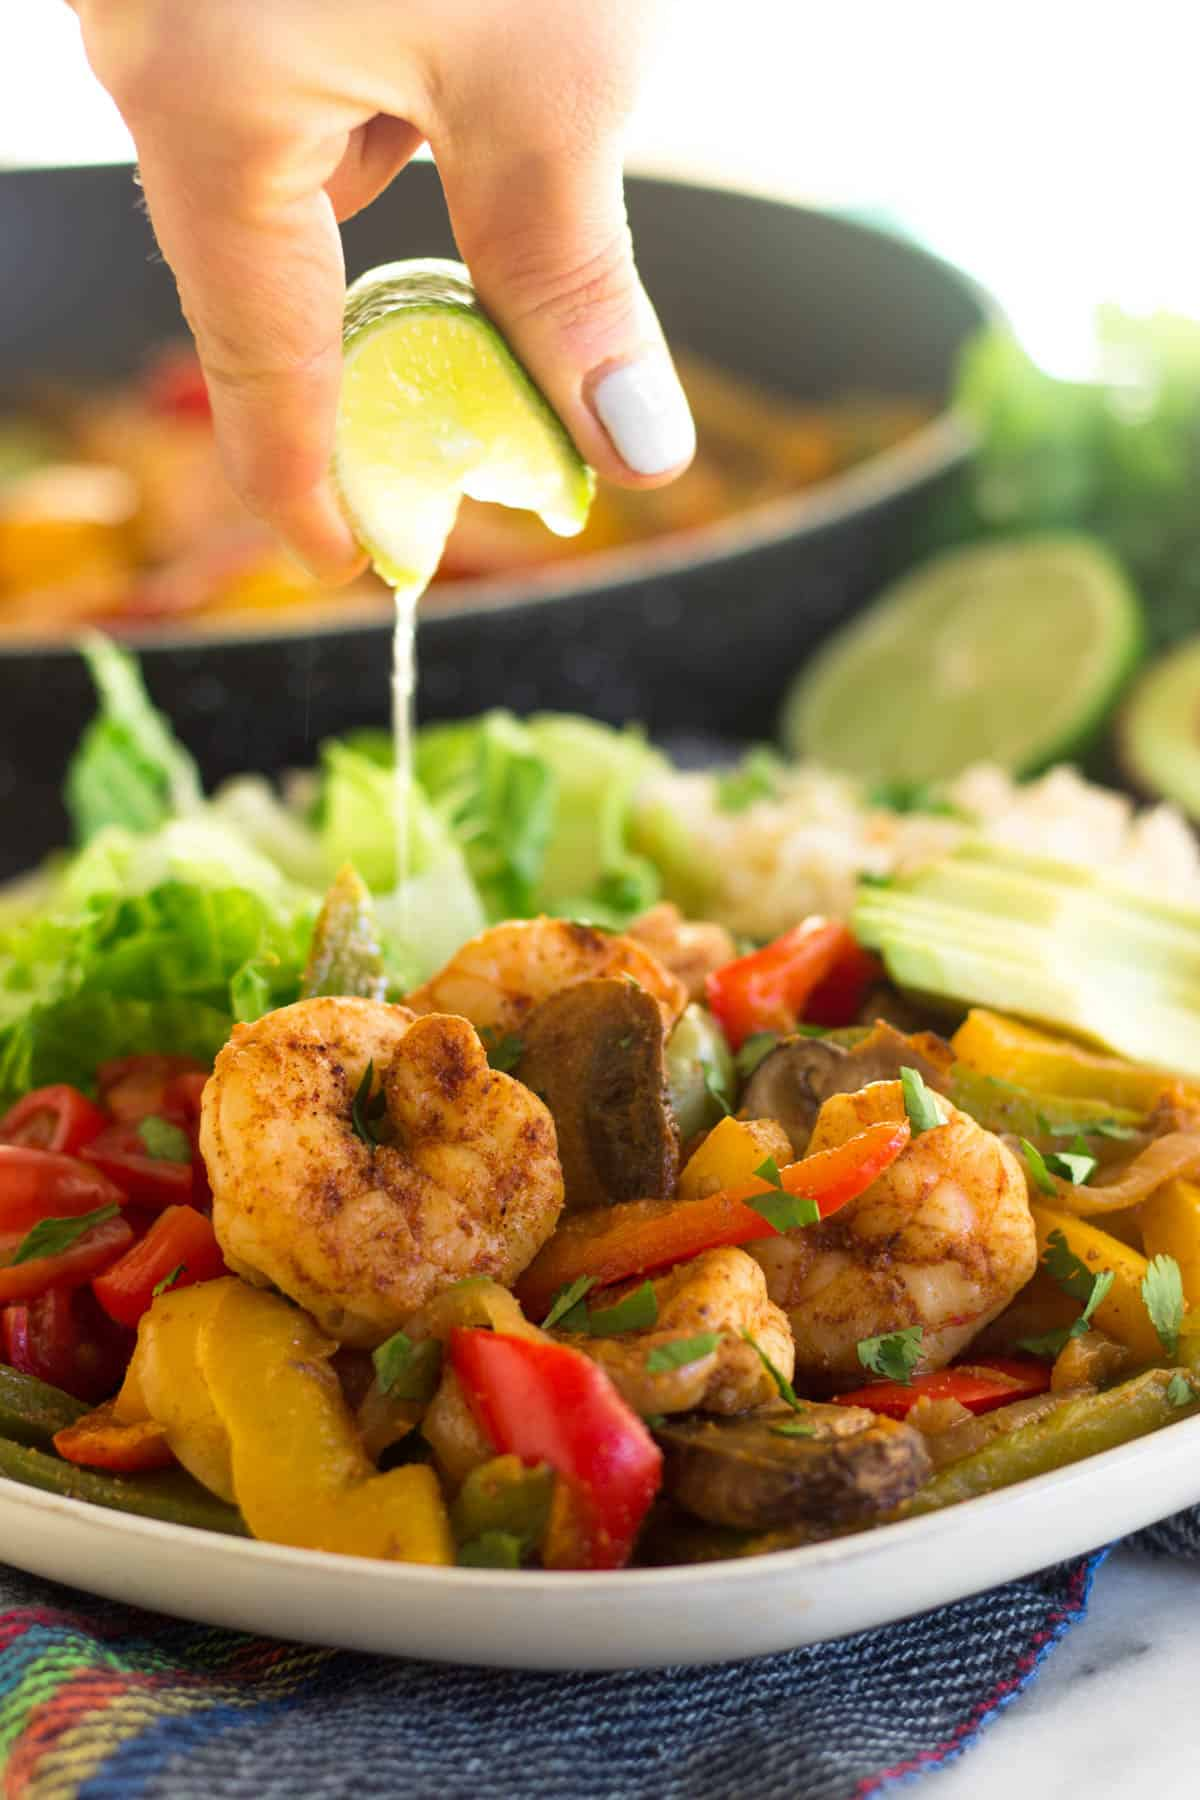 Close of a plate with shrimp fajitas and a person squeezing lime juice on them. Background is a pan of shrimp fajitas.